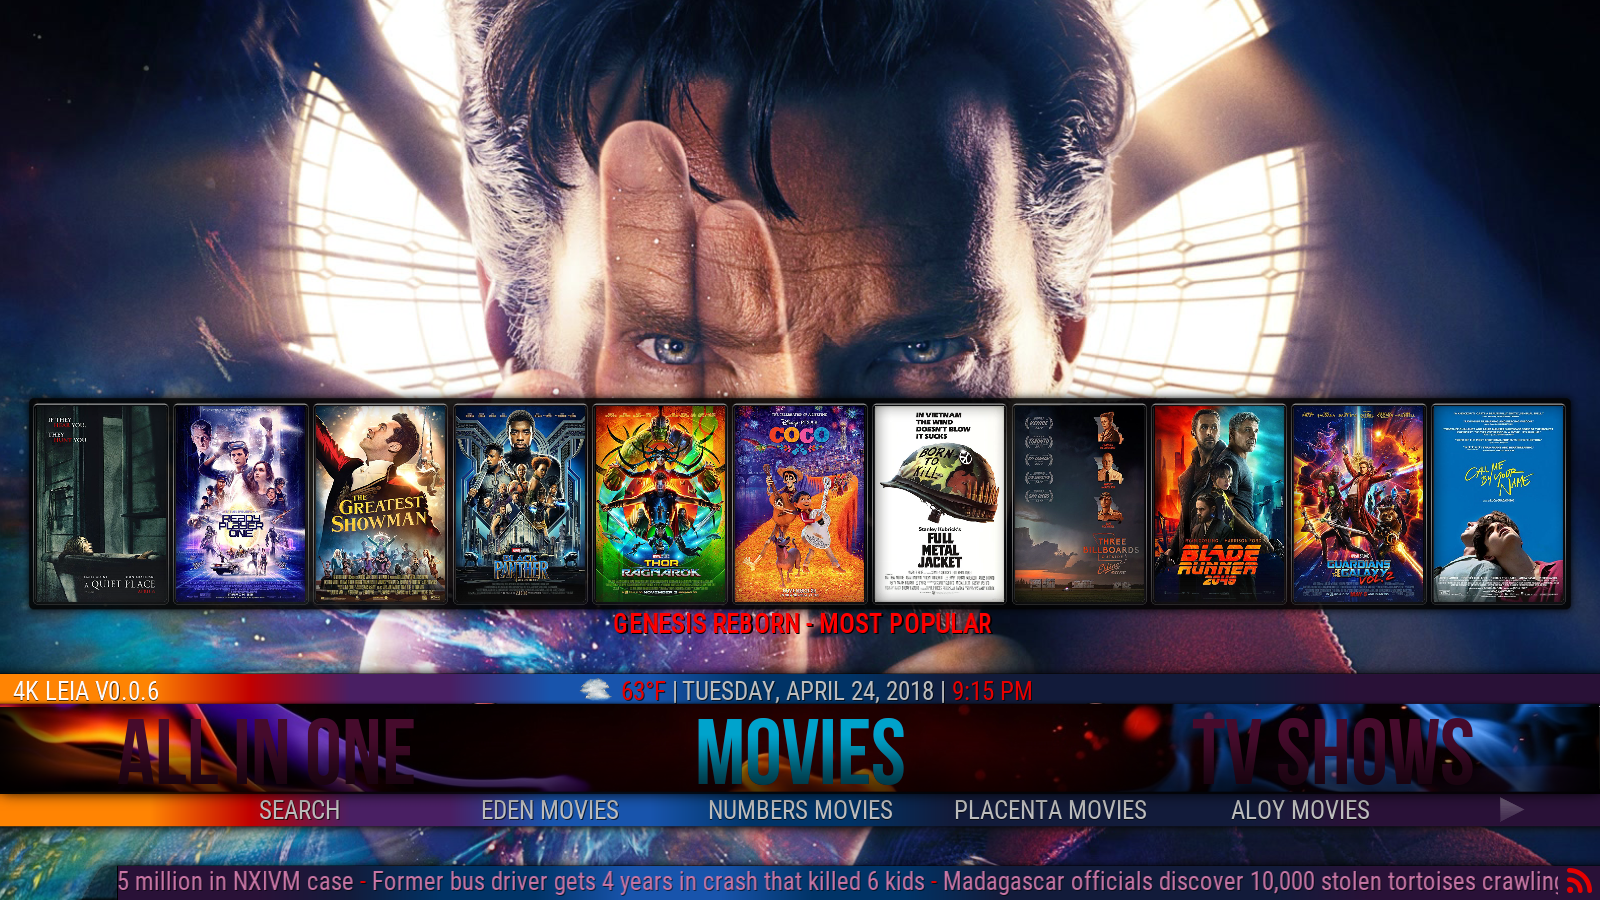 how to download movies from genesis reborn 2018